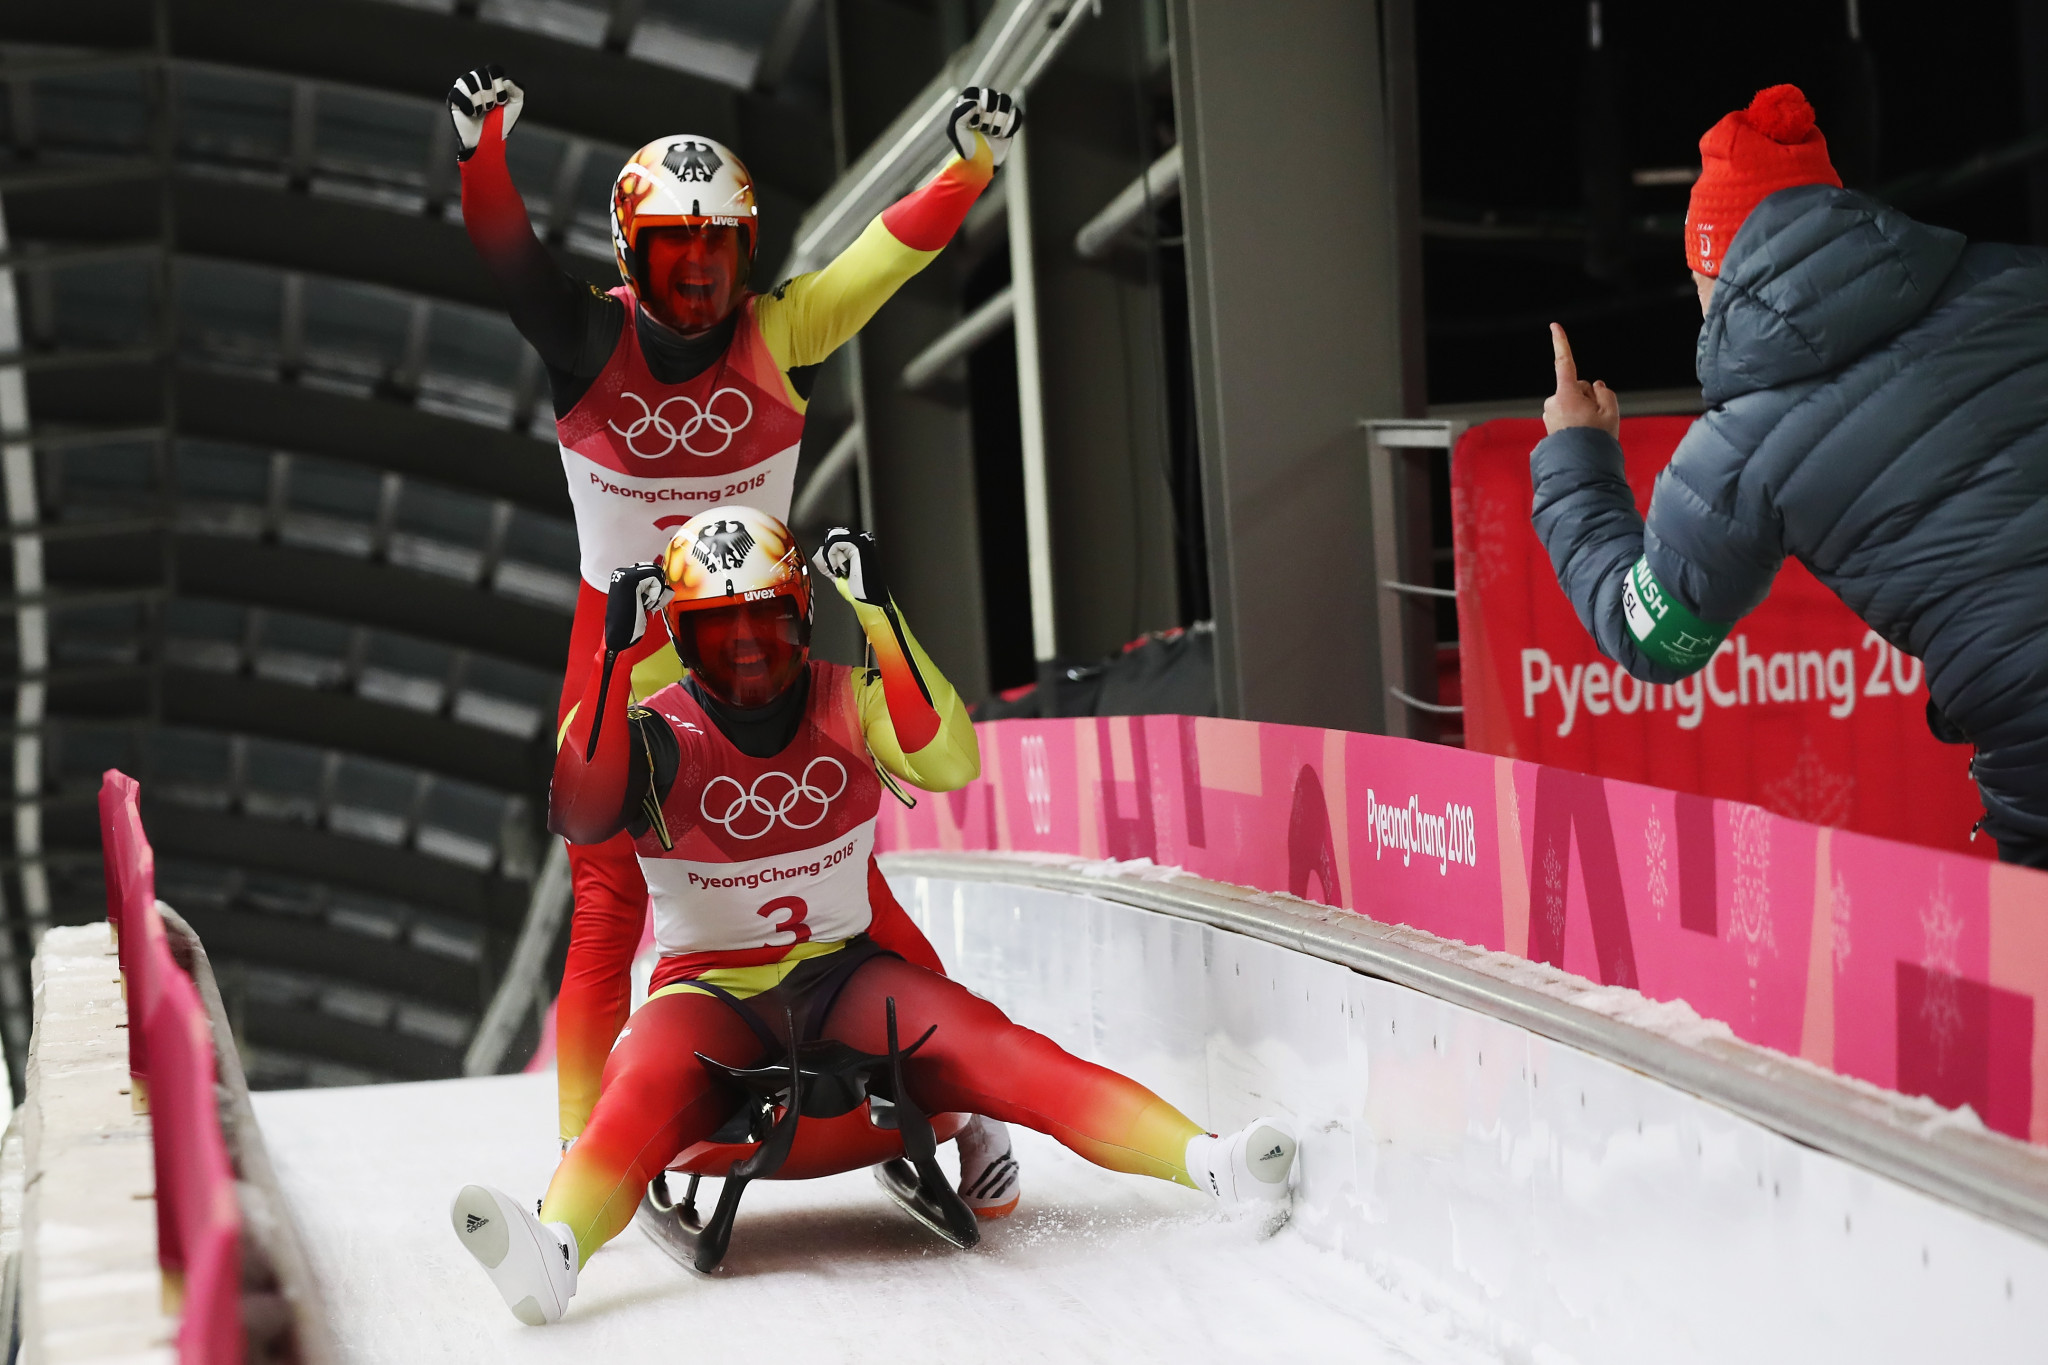 Olympics Luge Team Relay Final medal results: Germany wins again